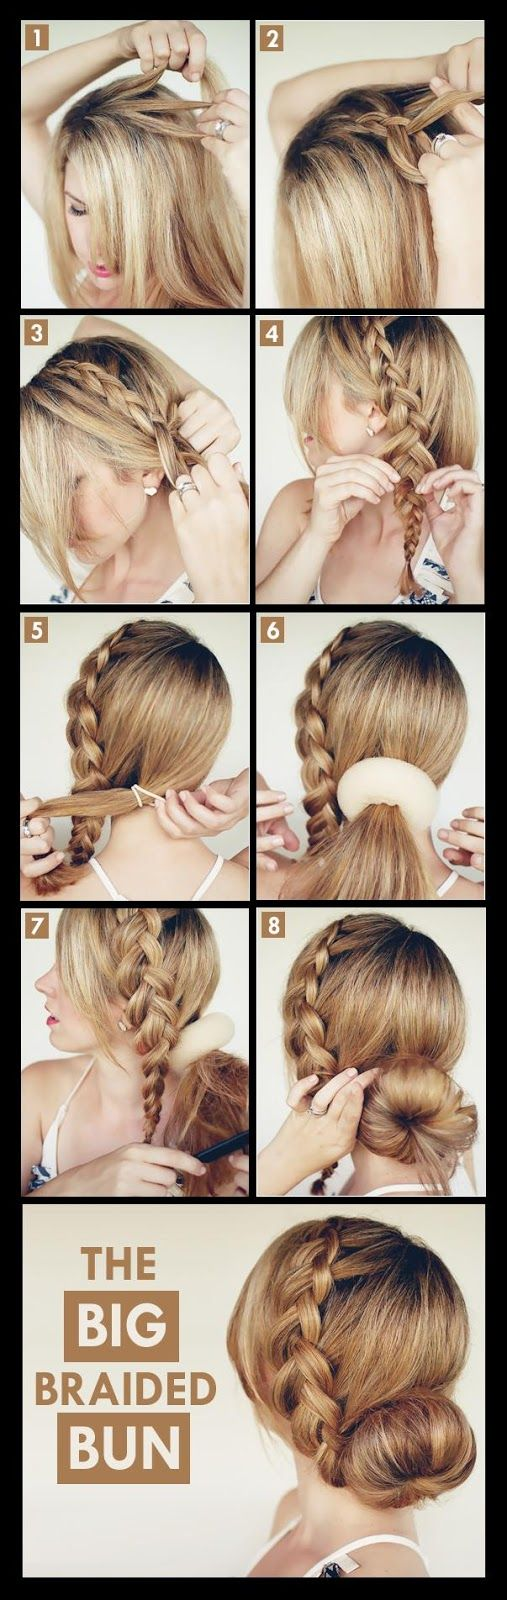 Remarkable Health Braided Buns And Tutorials On Pinterest Hairstyles For Men Maxibearus